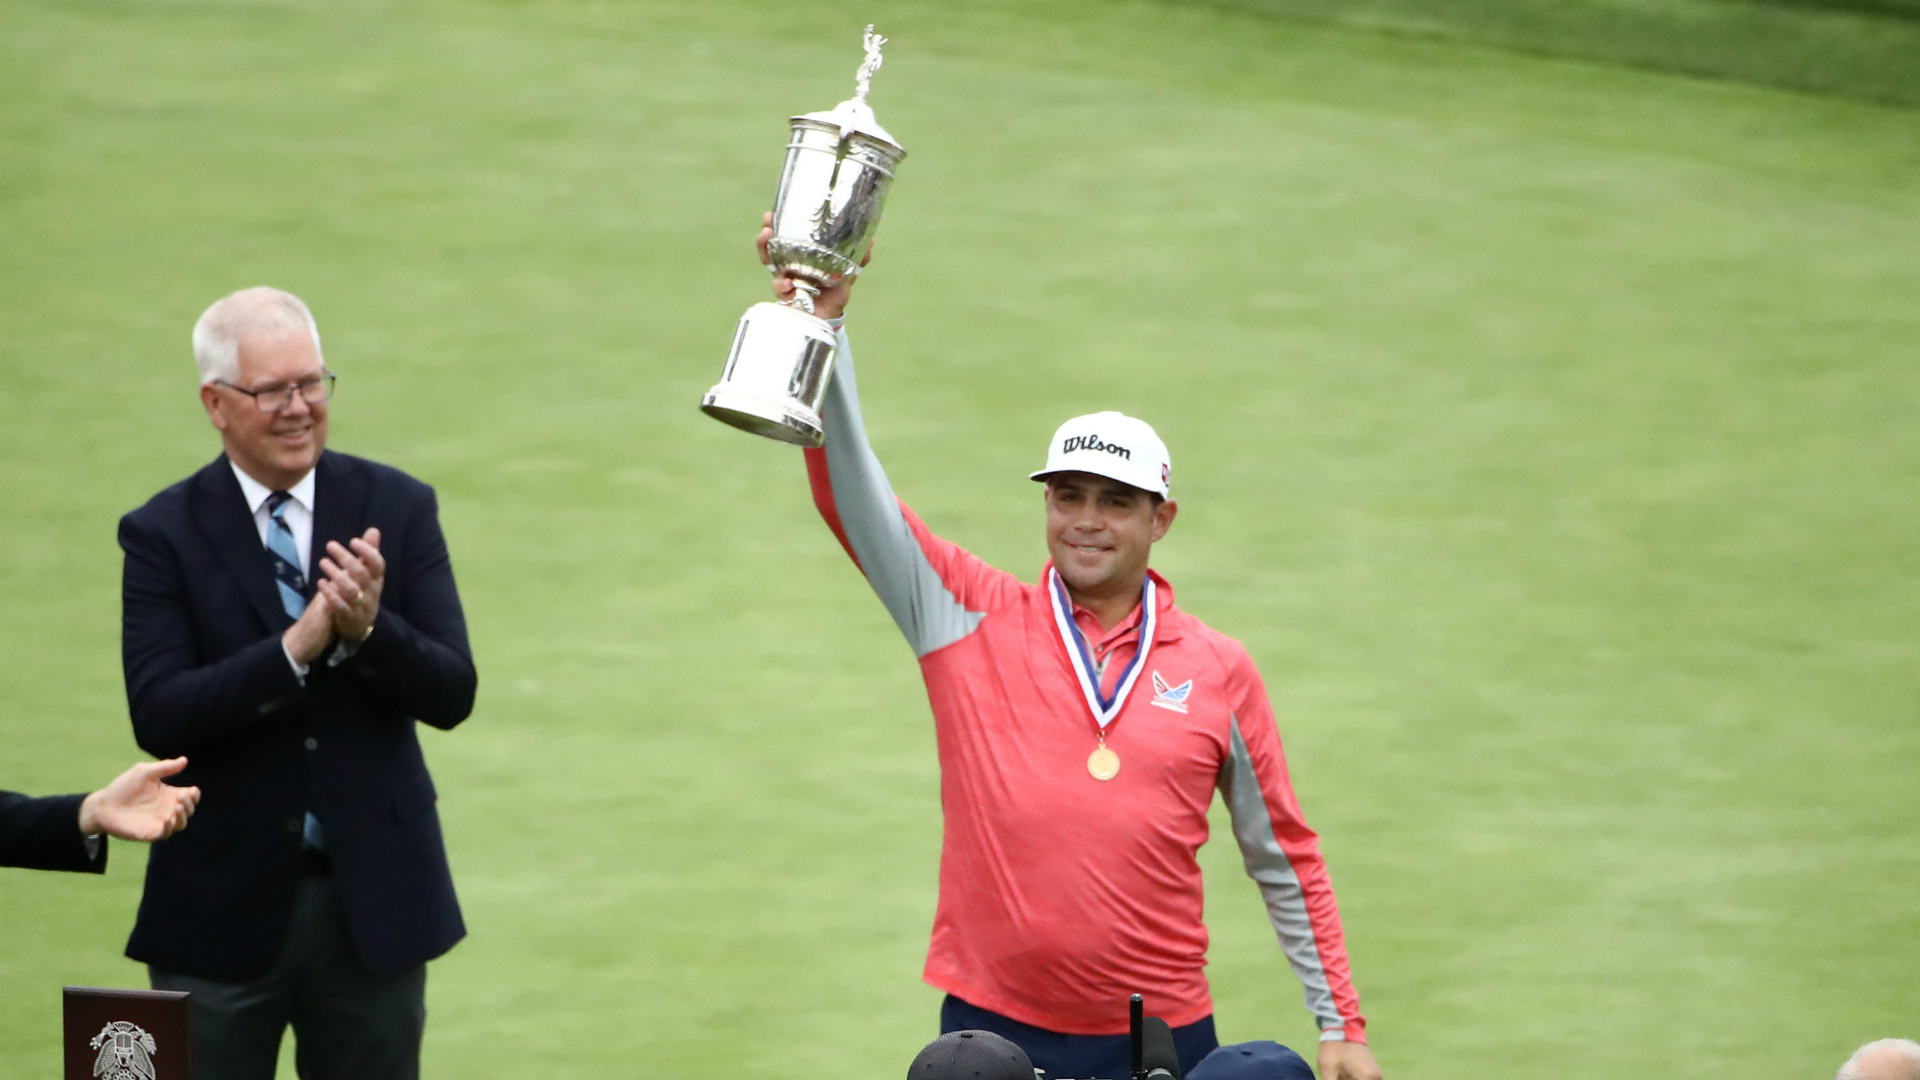 A clash with Kirk Hinrich helped pave the way for Gary Woodland to pursue a golf career and it paid off after winning the U.S. Open.